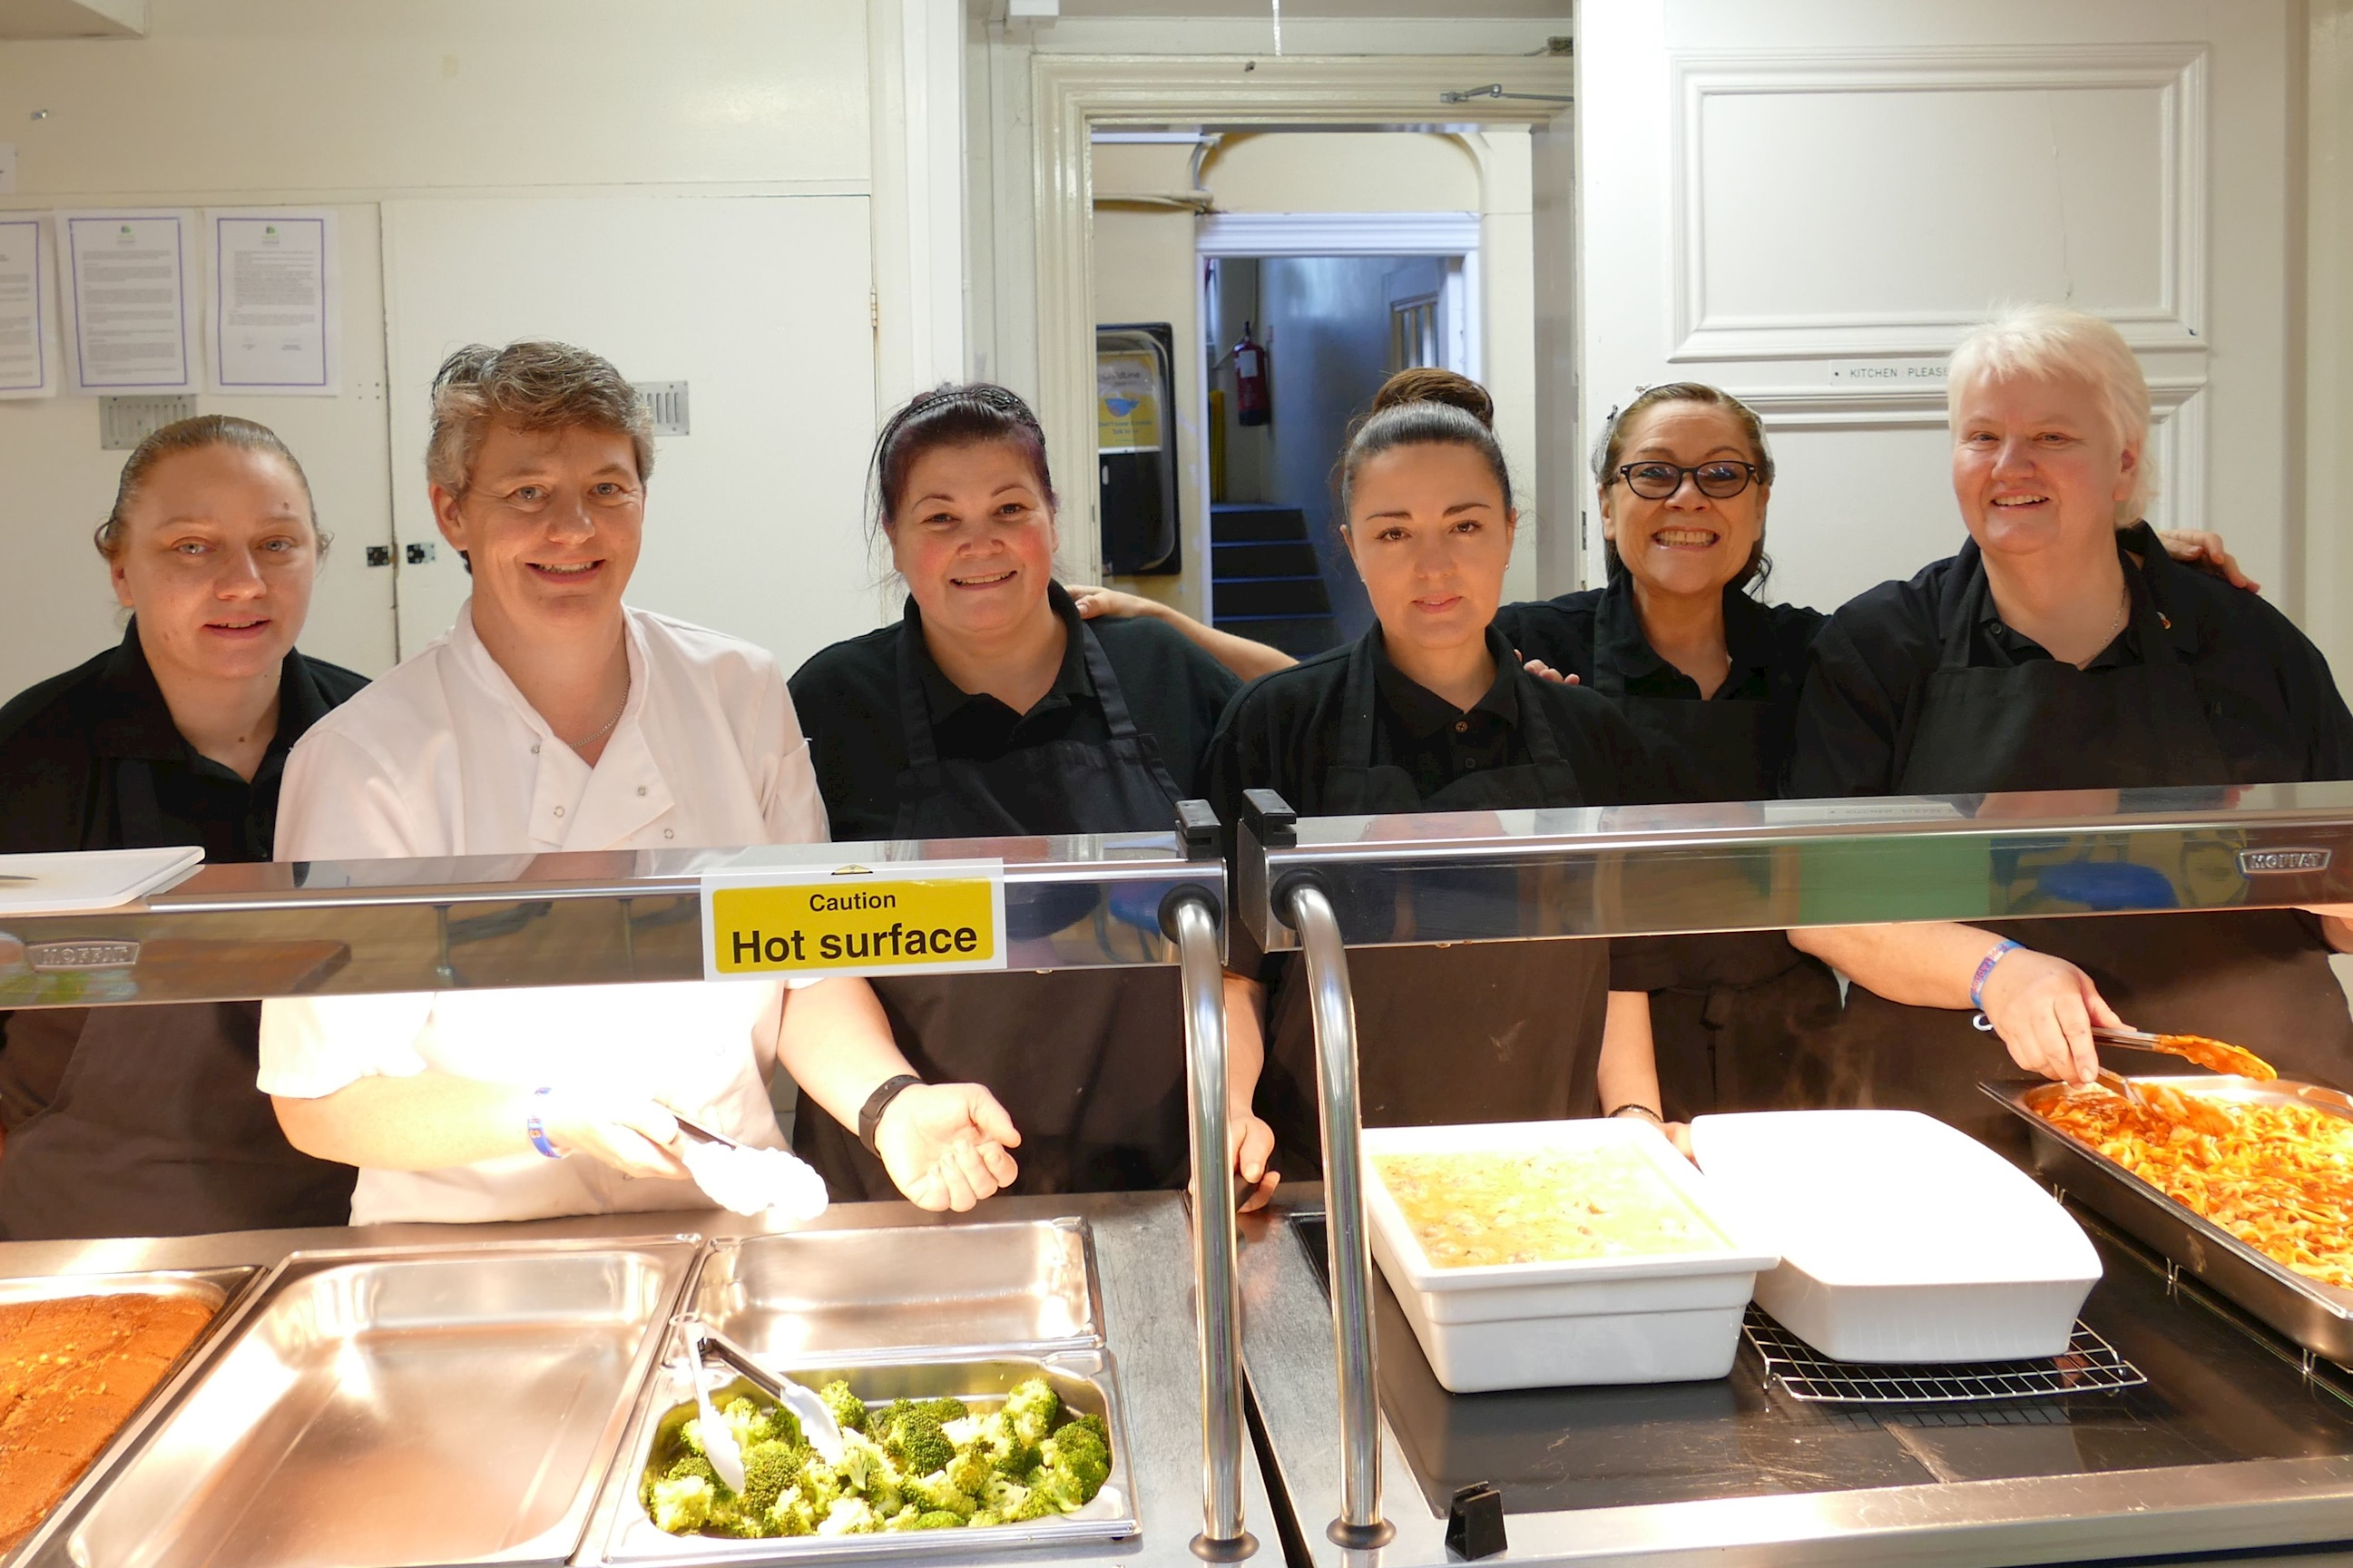 The wonderful catering team at St John's Beaumont School, serving up healthy fresh food daily.